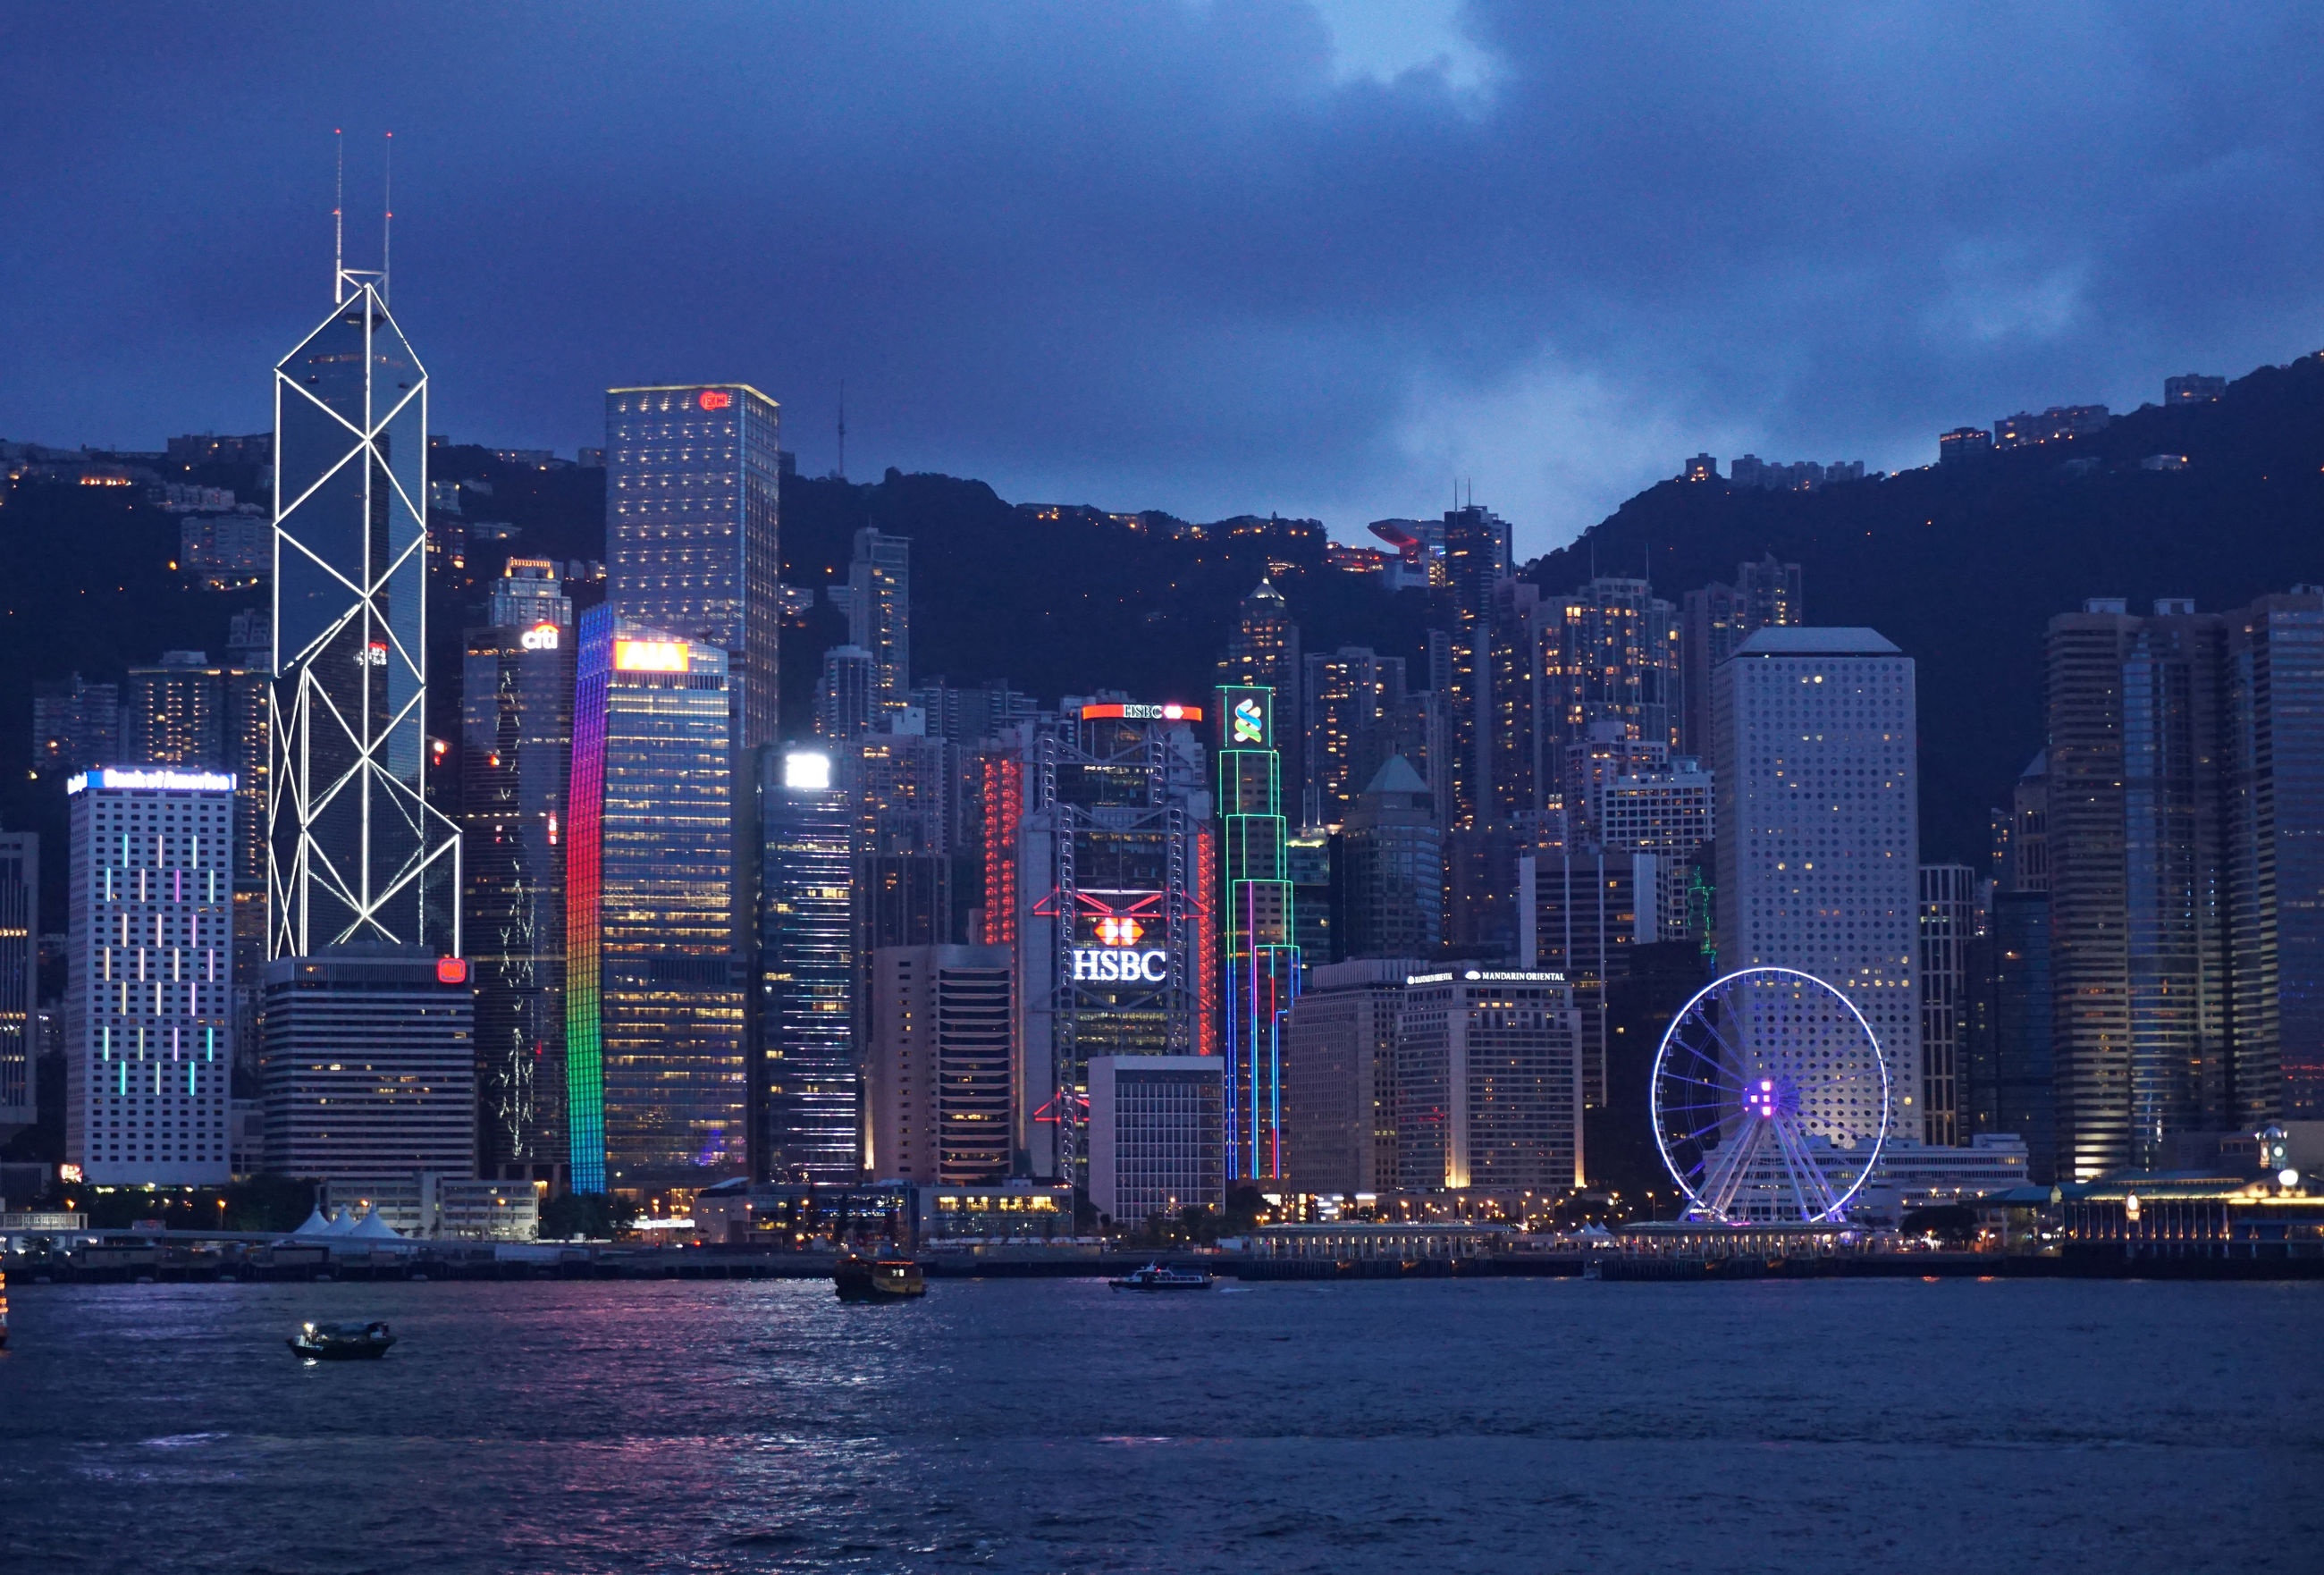 architecture, built structure, building exterior, city, illuminated, waterfront, skyscraper, water, development, modern, cityscape, night, dusk, travel destinations, urban skyline, building story, sky, tower, tall, city life, office building, tall - high, growth, outdoors, harbor, financial district, sea, in front of, skyline